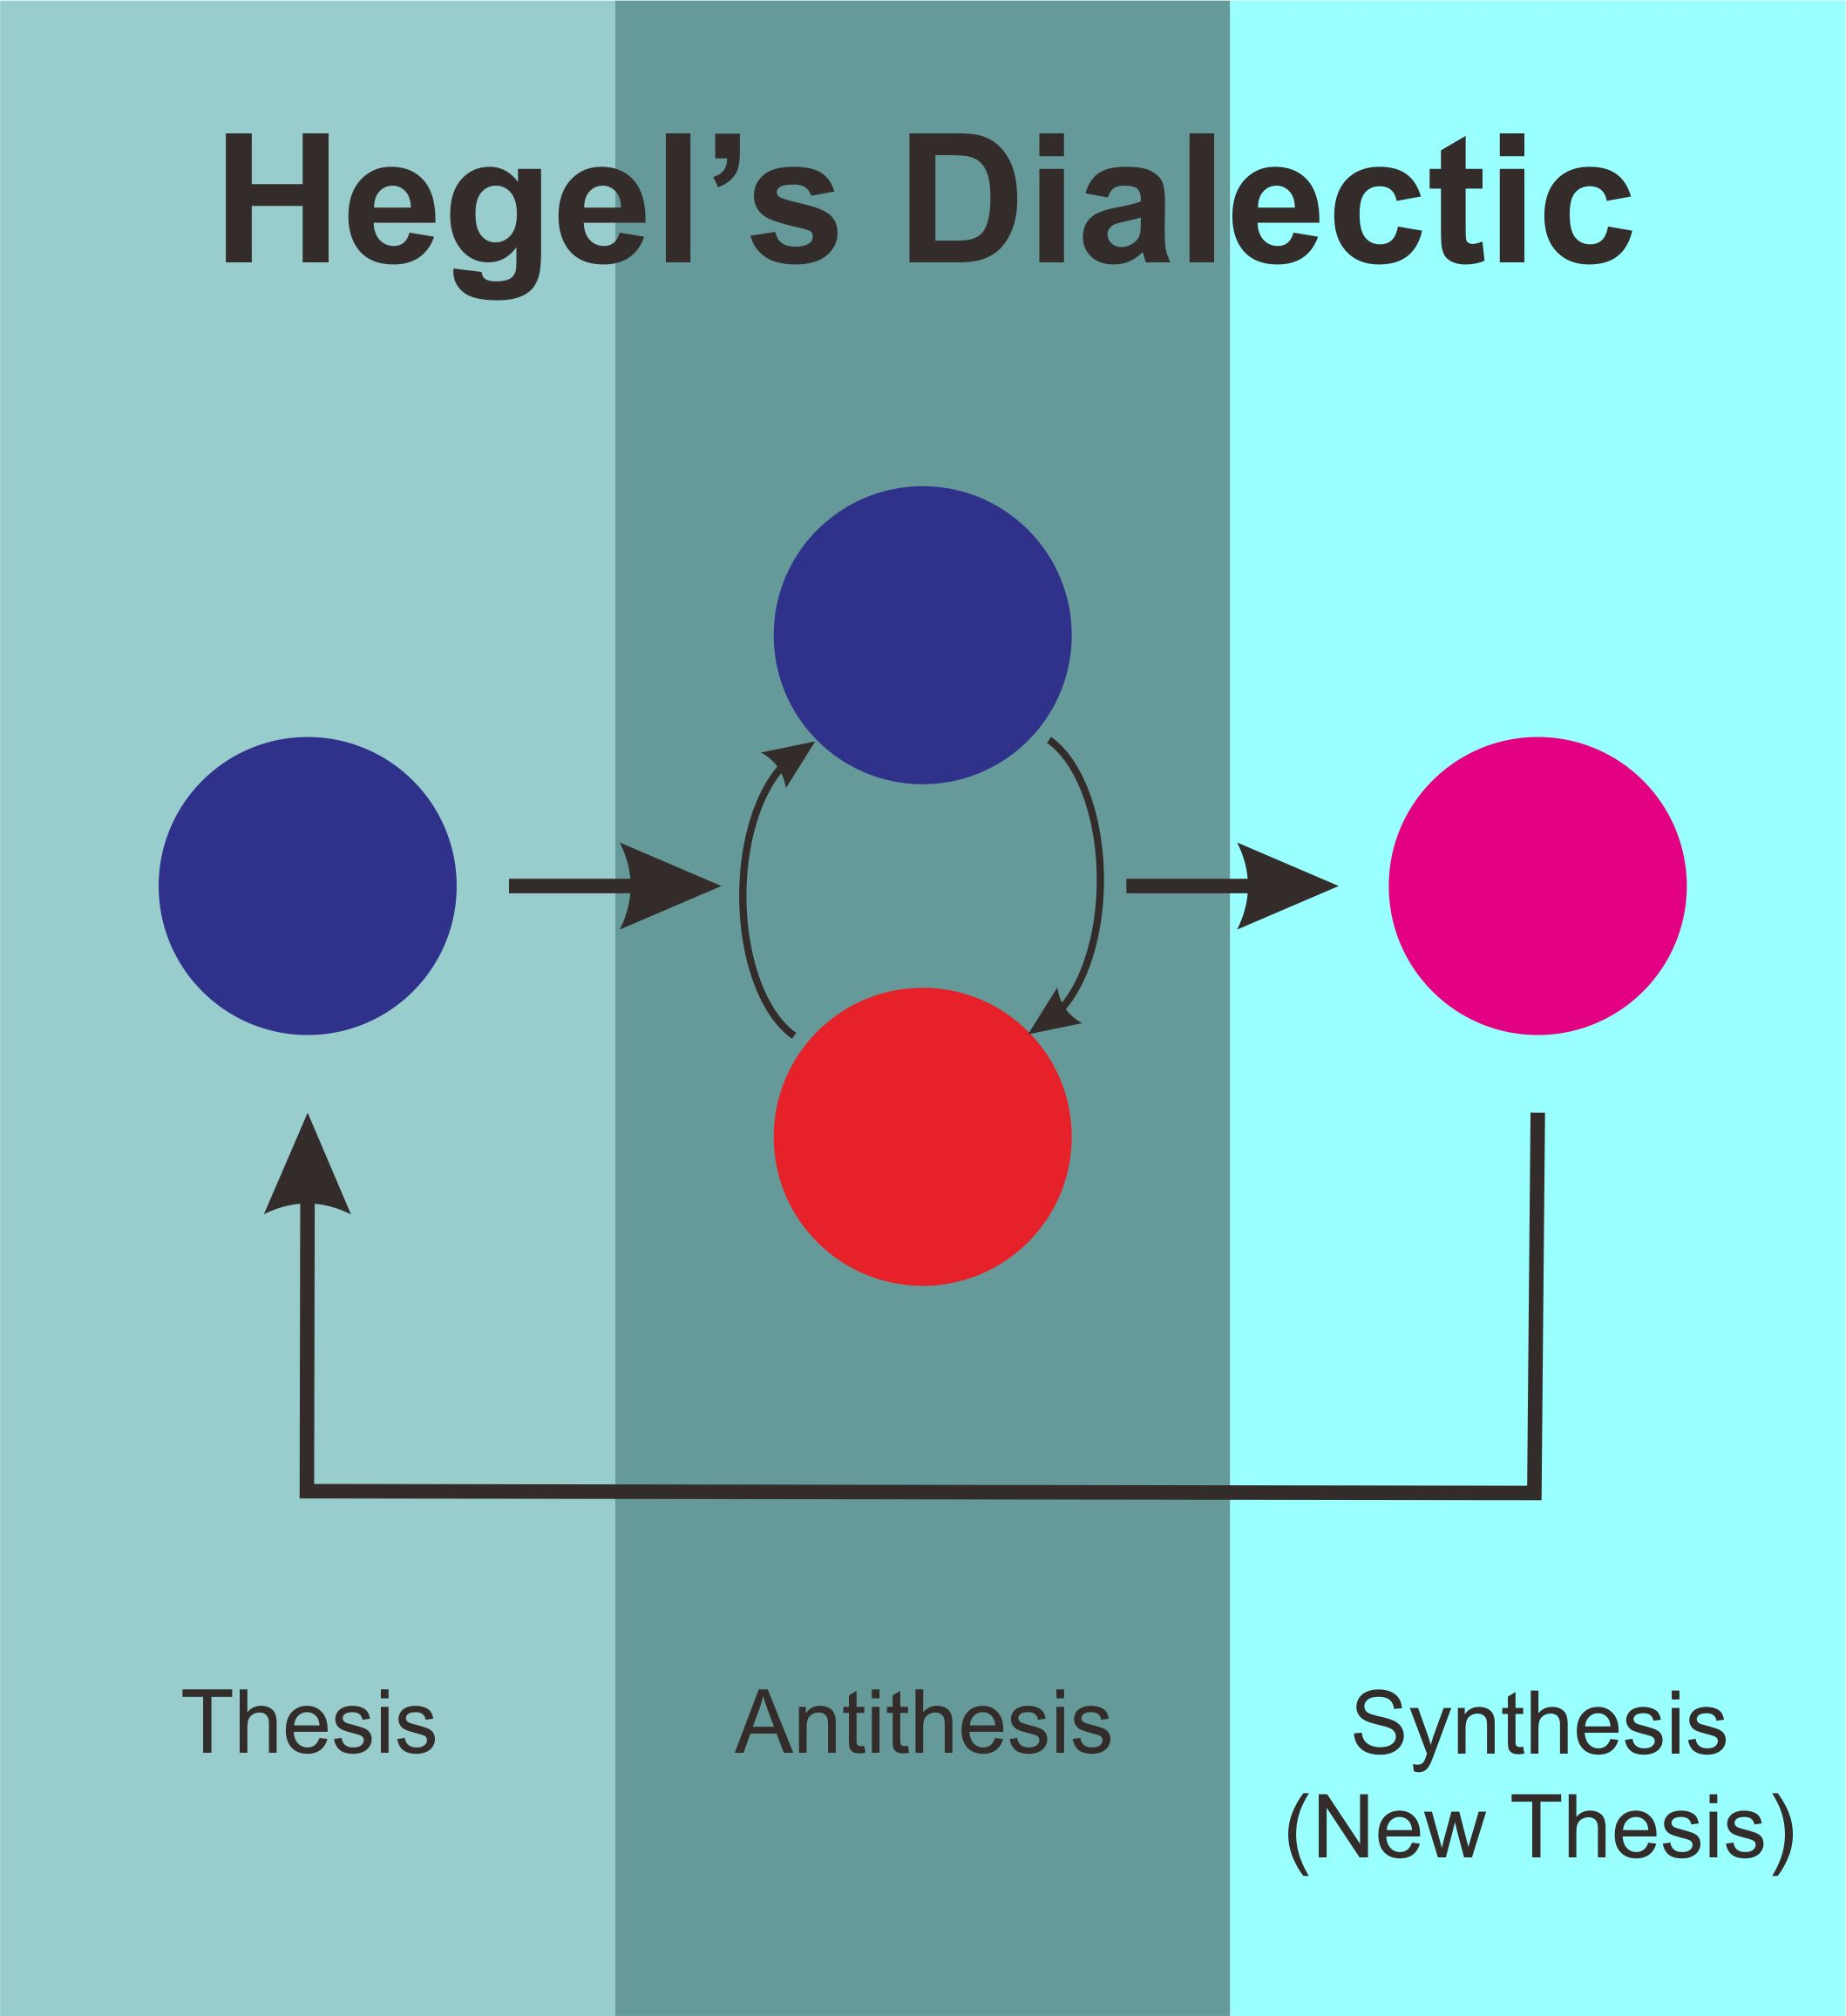 hegel history thesis antithesis synthesis The triad thesis, antithesis, synthesis is often used to describe the thought of german philosopher georg wilhelm friedrich hegelhegel never used the term himself it originated with johann fichte.